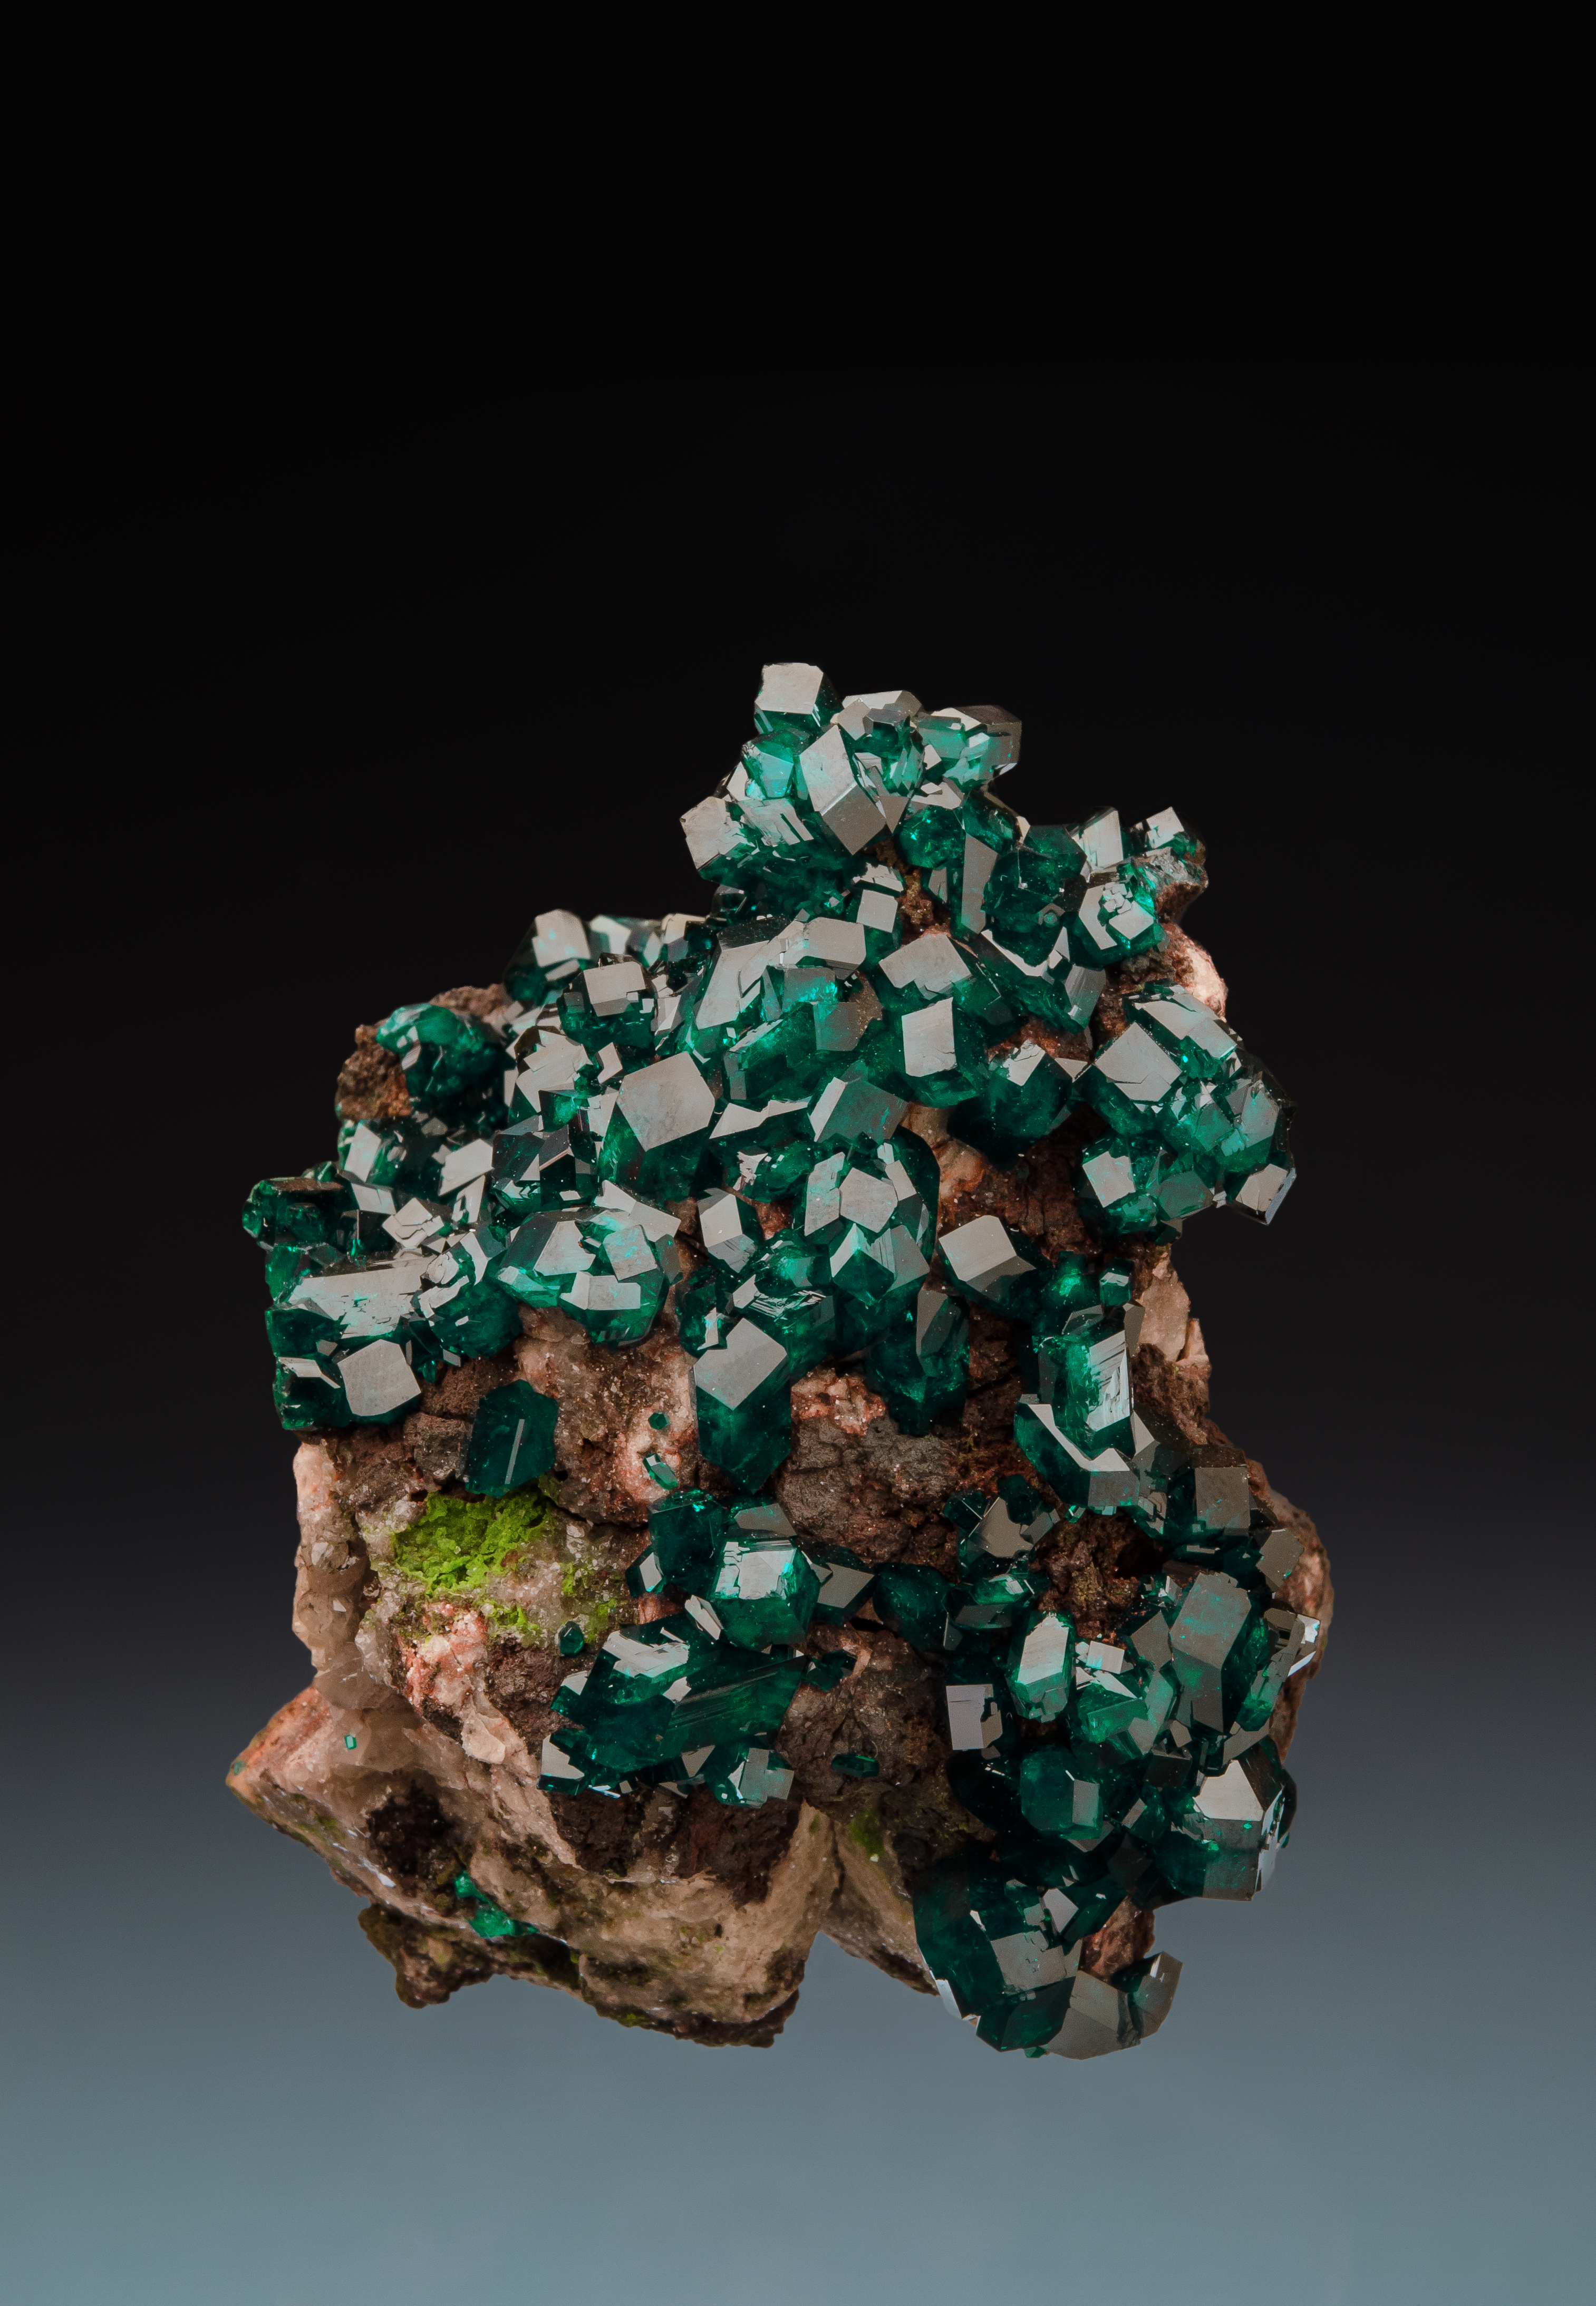 Small teal-green gemmy cubic crystals cover a brown rock.